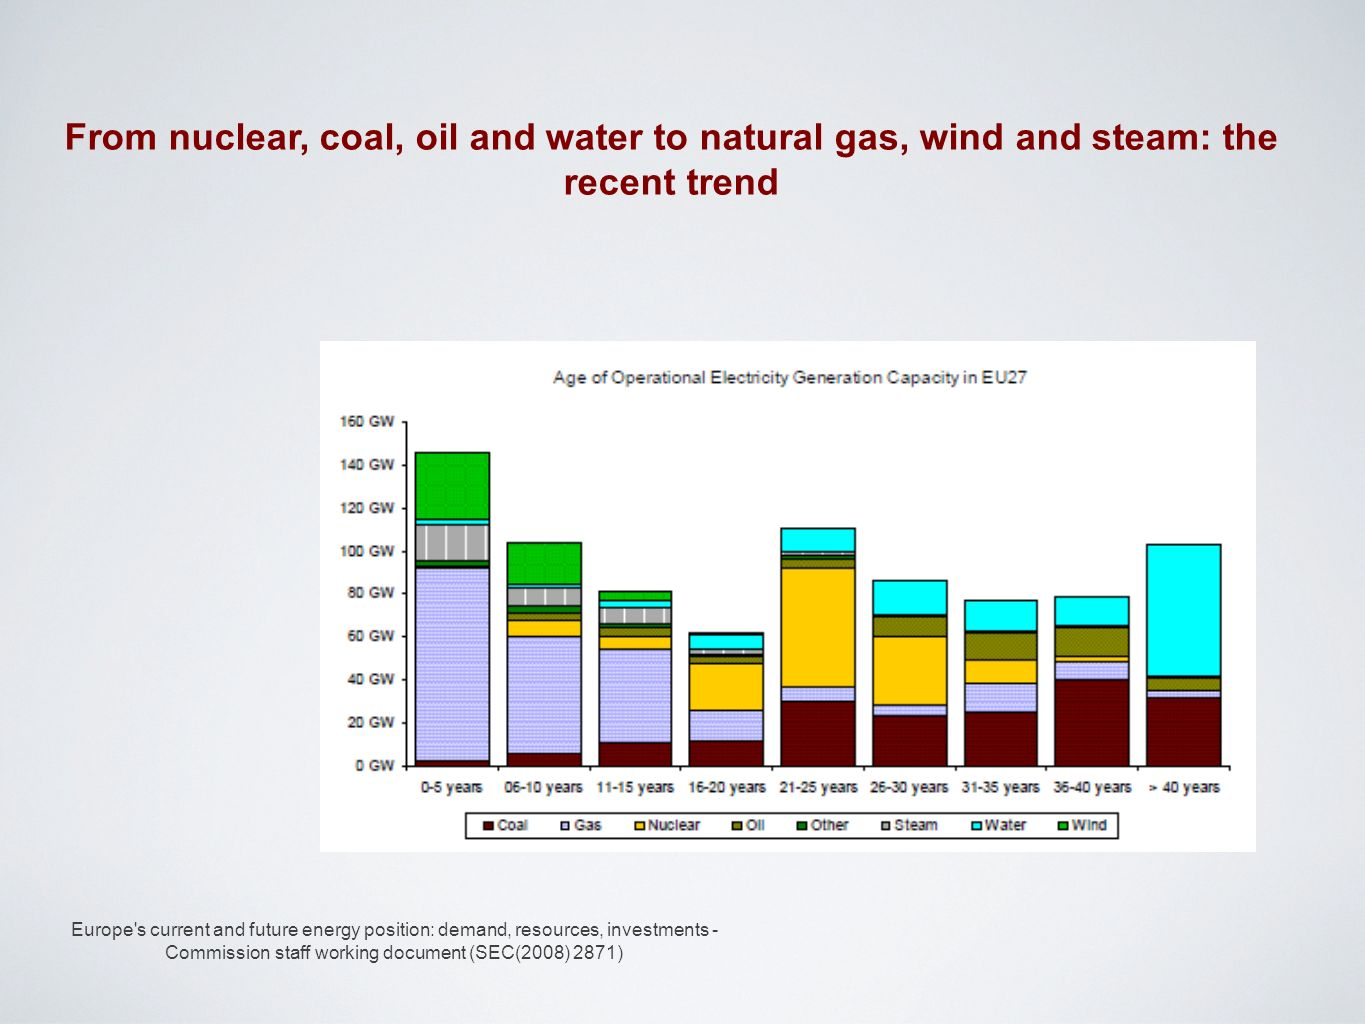 Europe's current and future energy position: demand, resources, investments - Commission staff working document (SEC(2008) 2871) From nuclear, coal, o